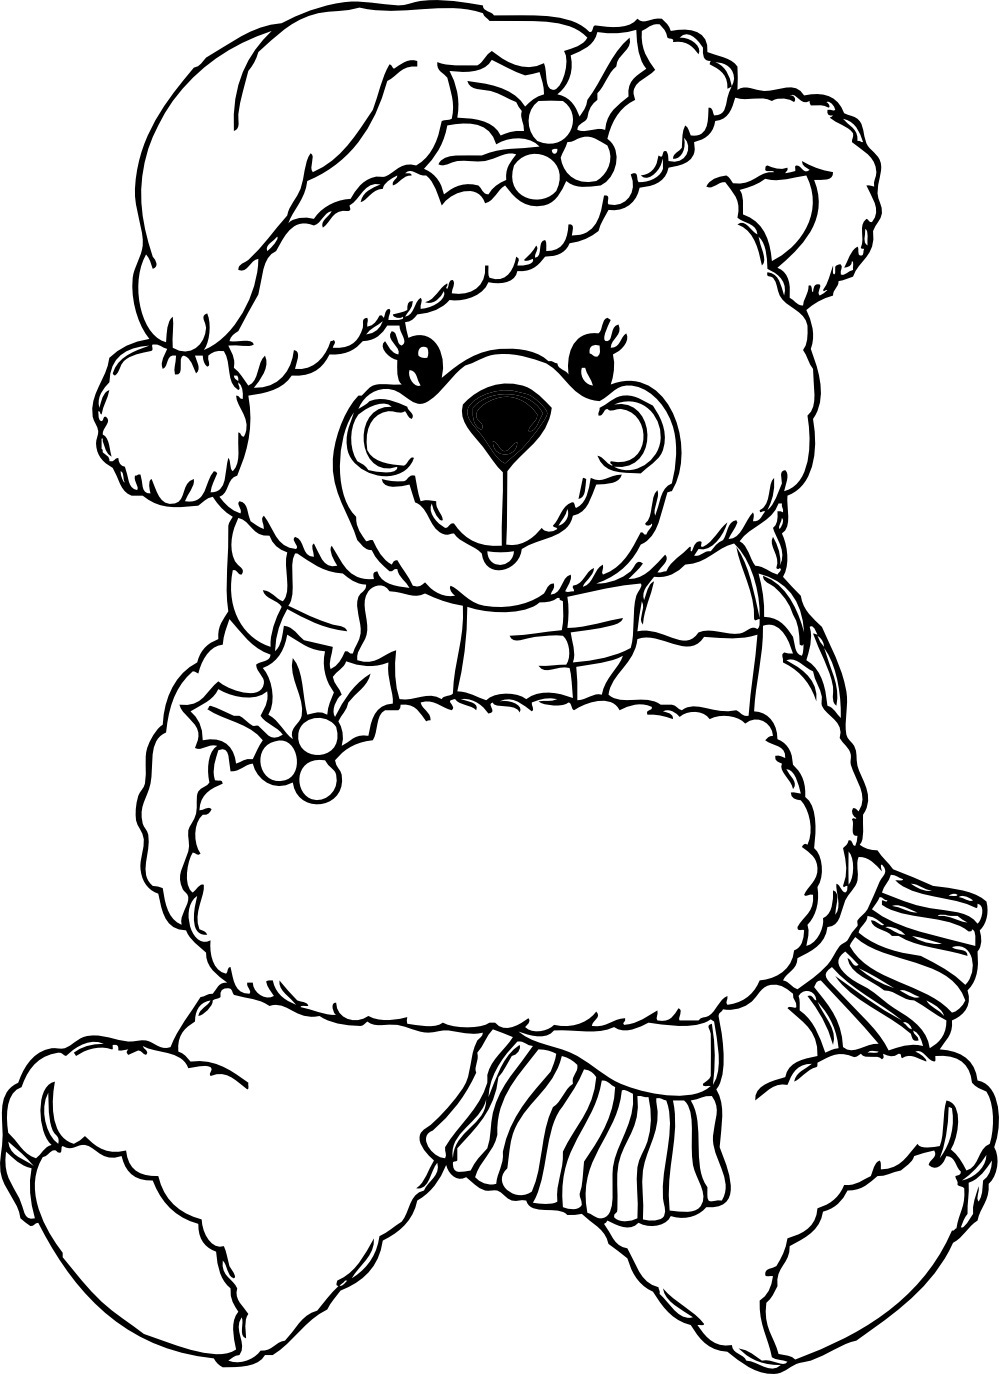 black bear coloring pages printable - photo #32